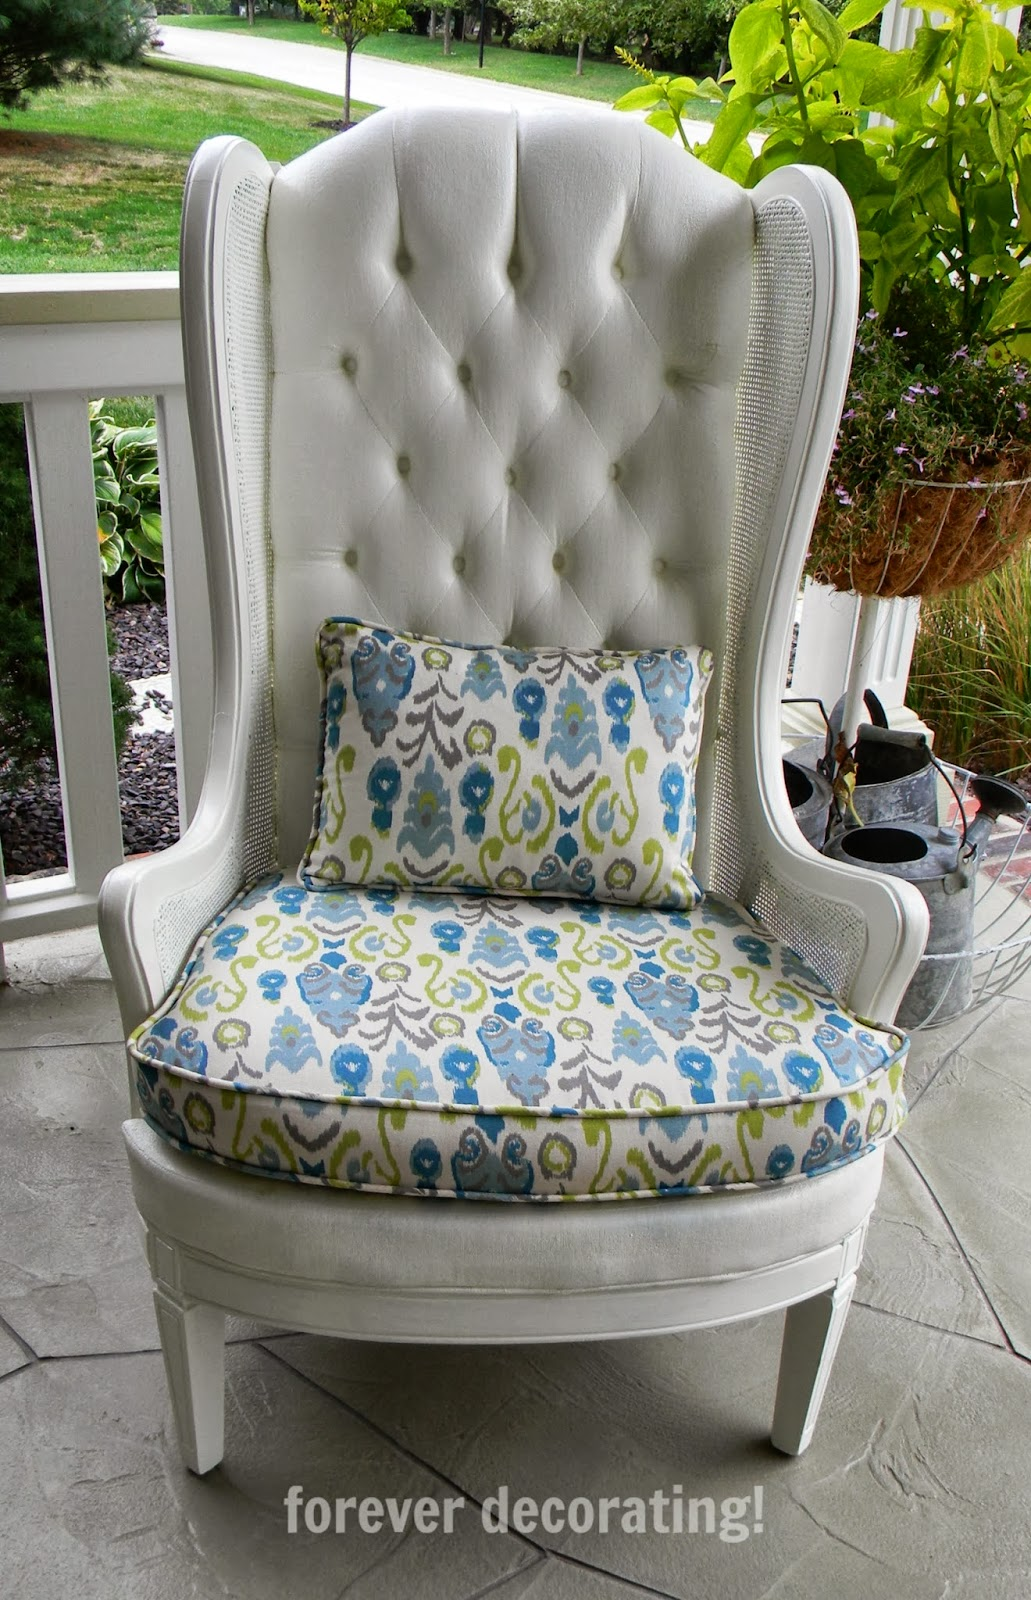 Forever Decorating!: Charming Painted Upholstered Chair